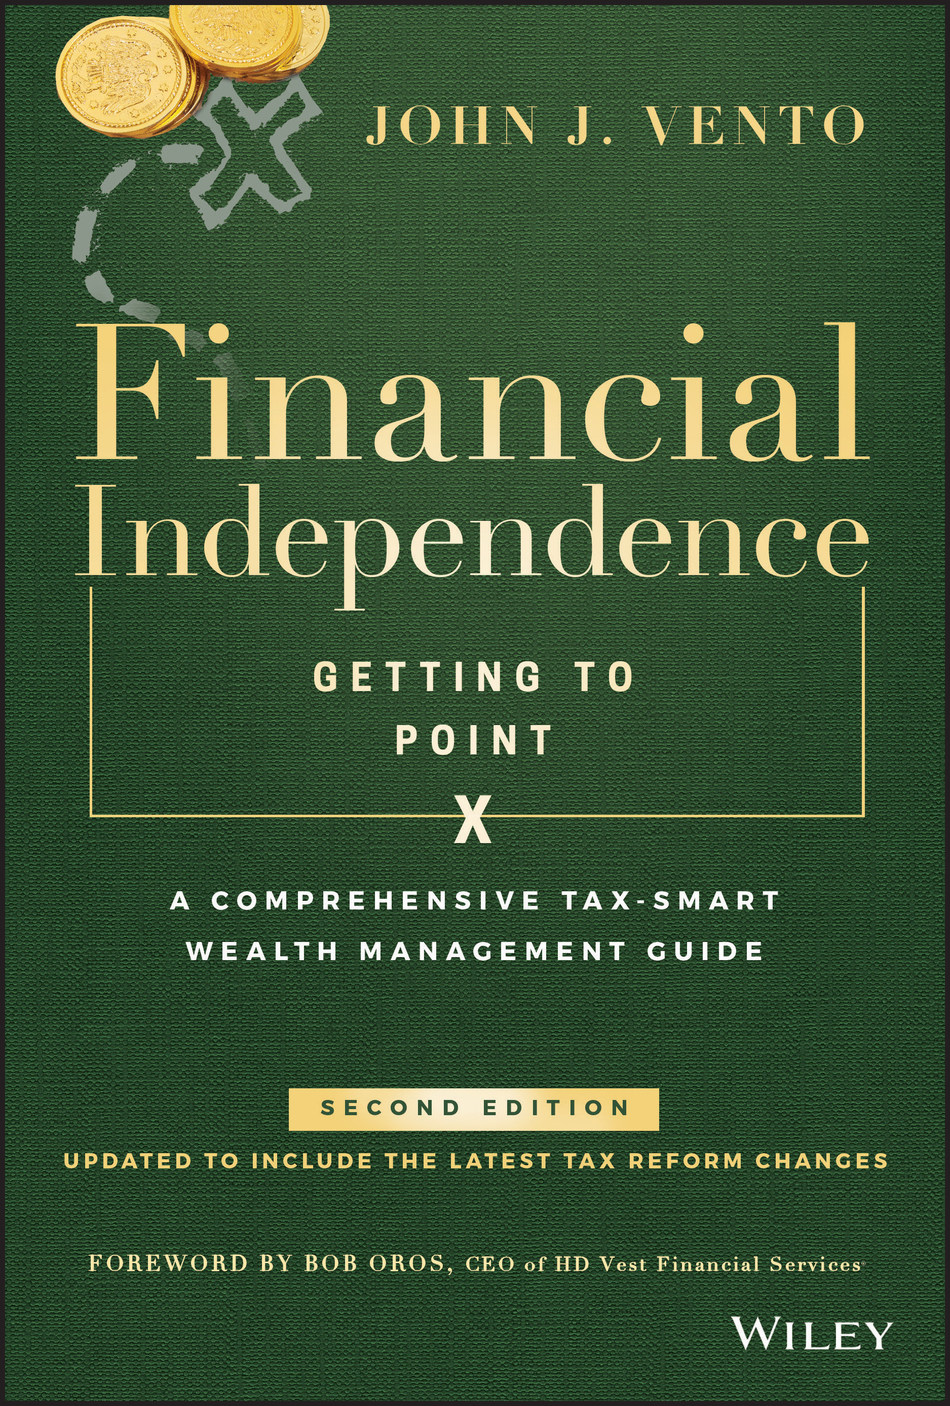 The completely revised second edition of Financial Independence: Getting to Point X is the first book to be published by Wiley covering the Tax Cuts and Jobs Act of 2017, and provides consumers and their financial advisors with the new easy-to-follow roadmap to Point X, including the latest thinking, and best practices following the ratification of the new tax reform.